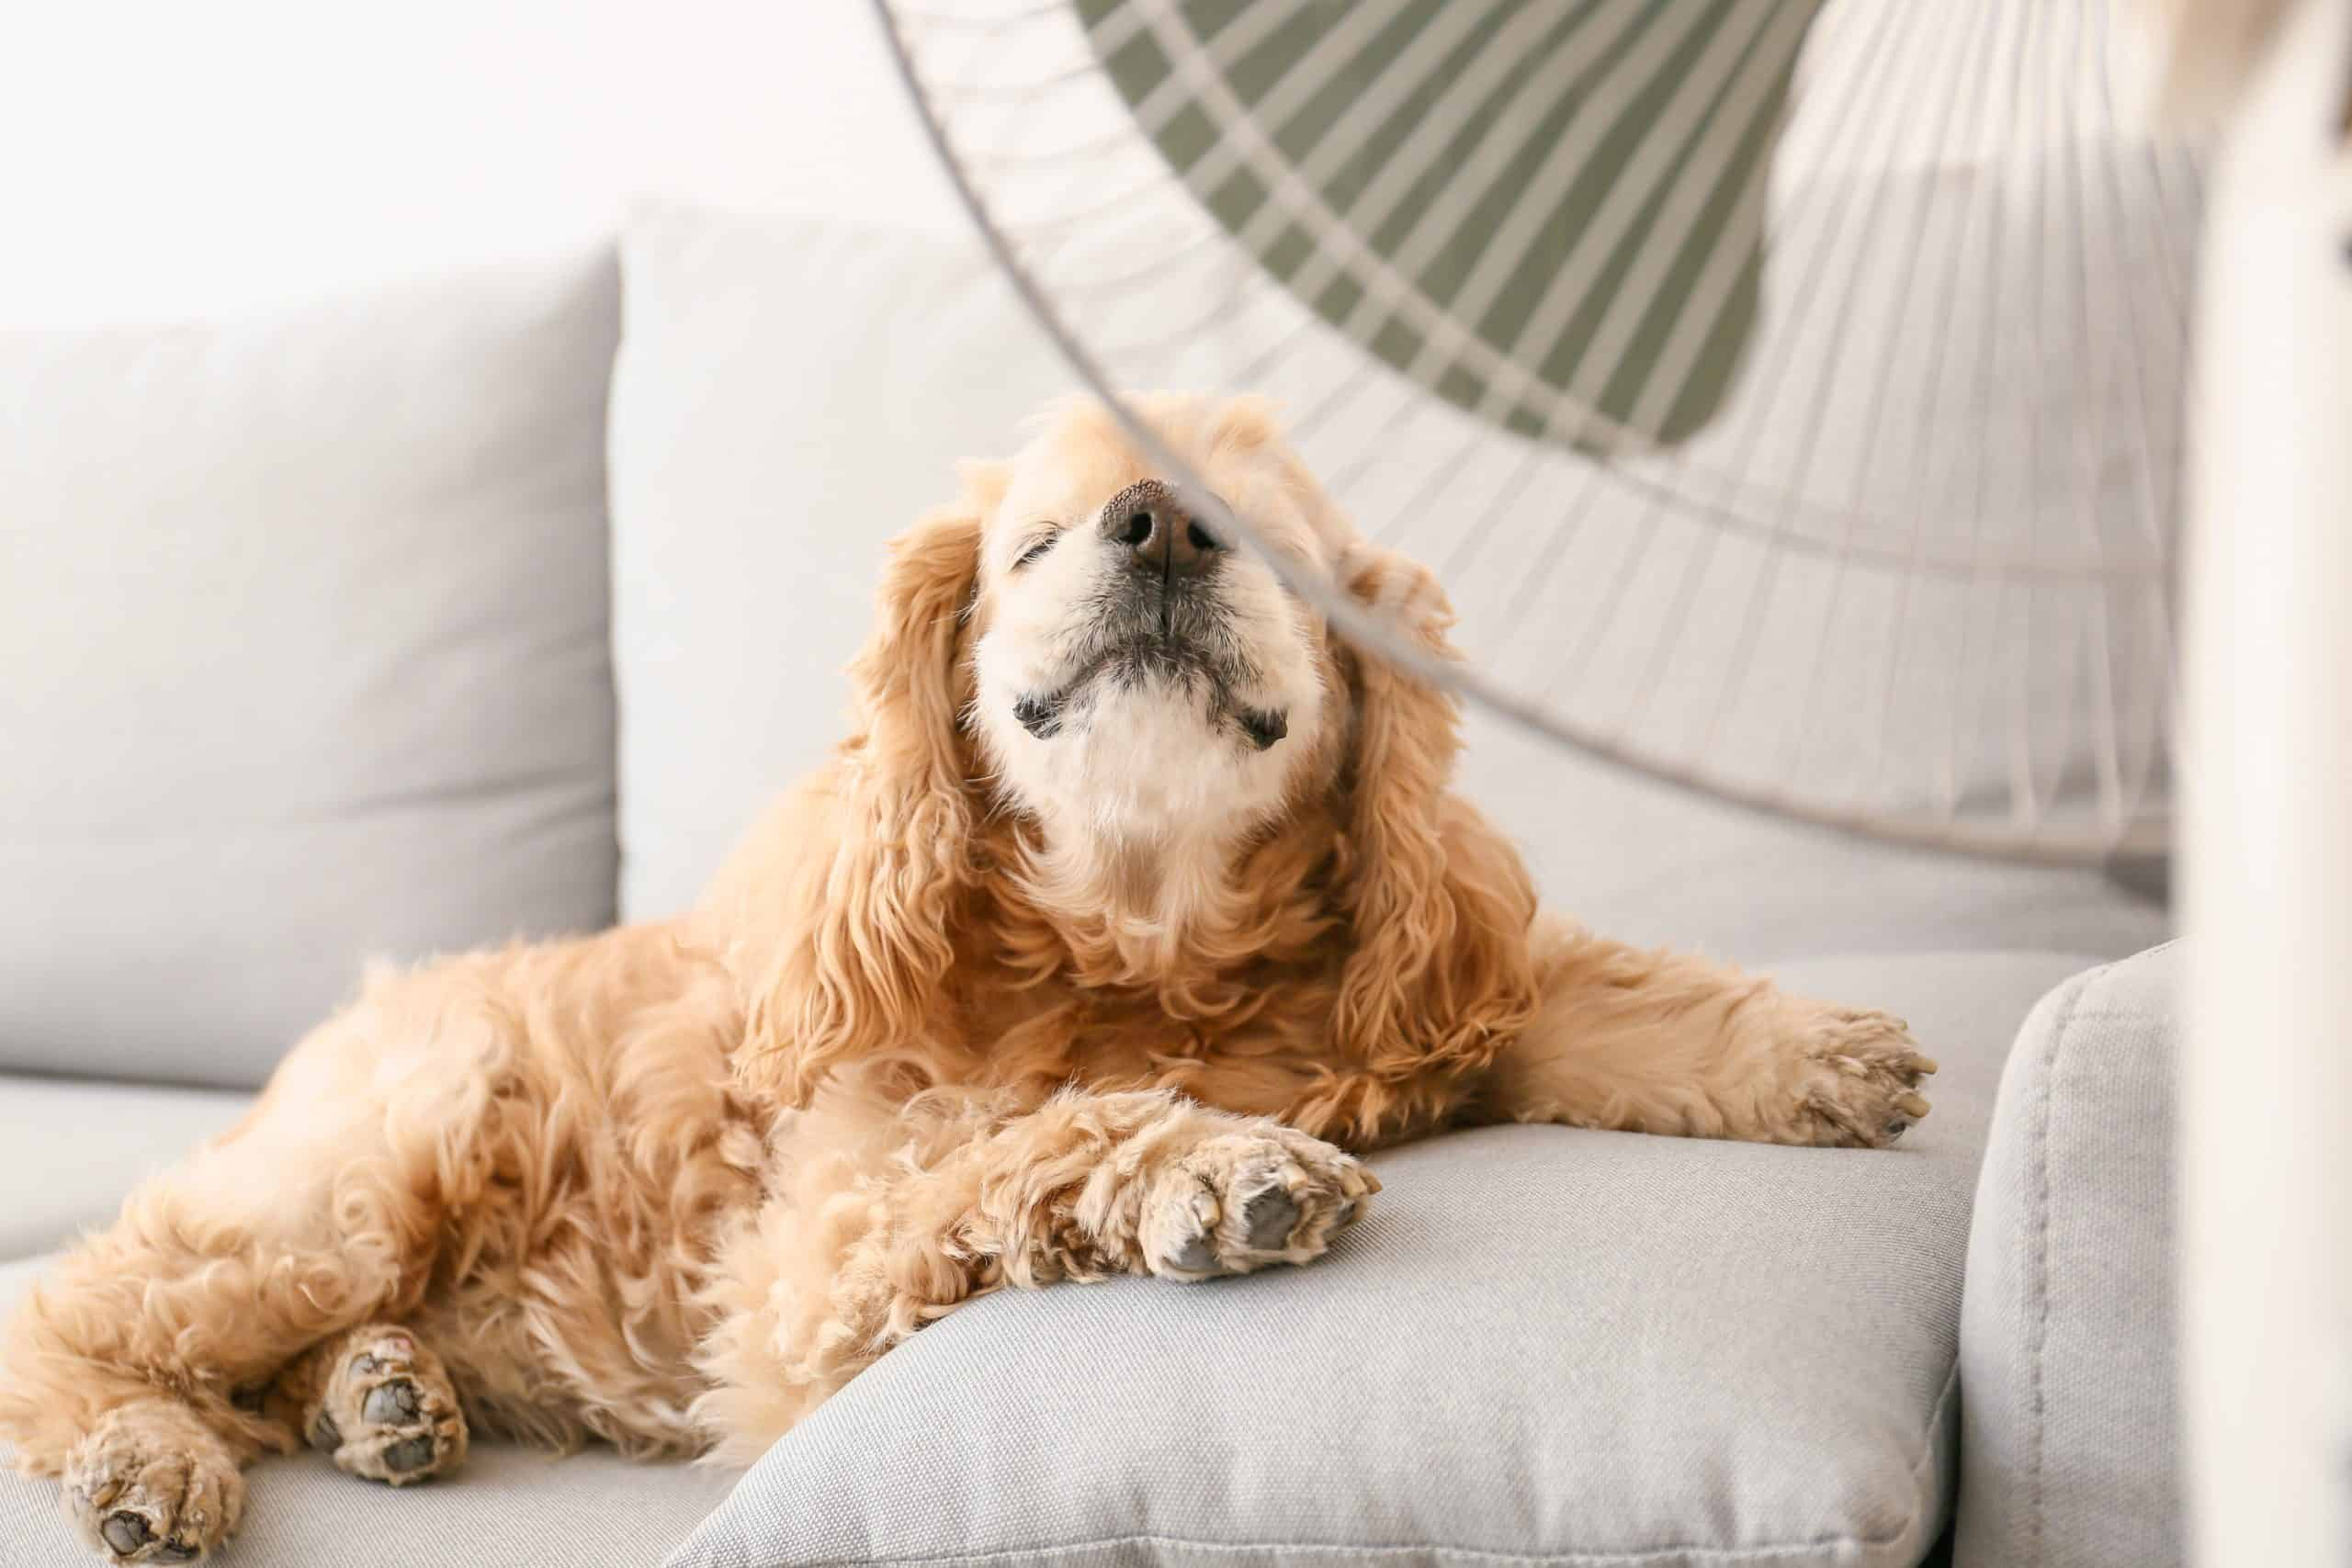 Cocker spaniel sits in front of a fan. Cool dogs suffering from heatstroke down quickly by giving your dog water to drink, spraying it with cool water, or using a fan.